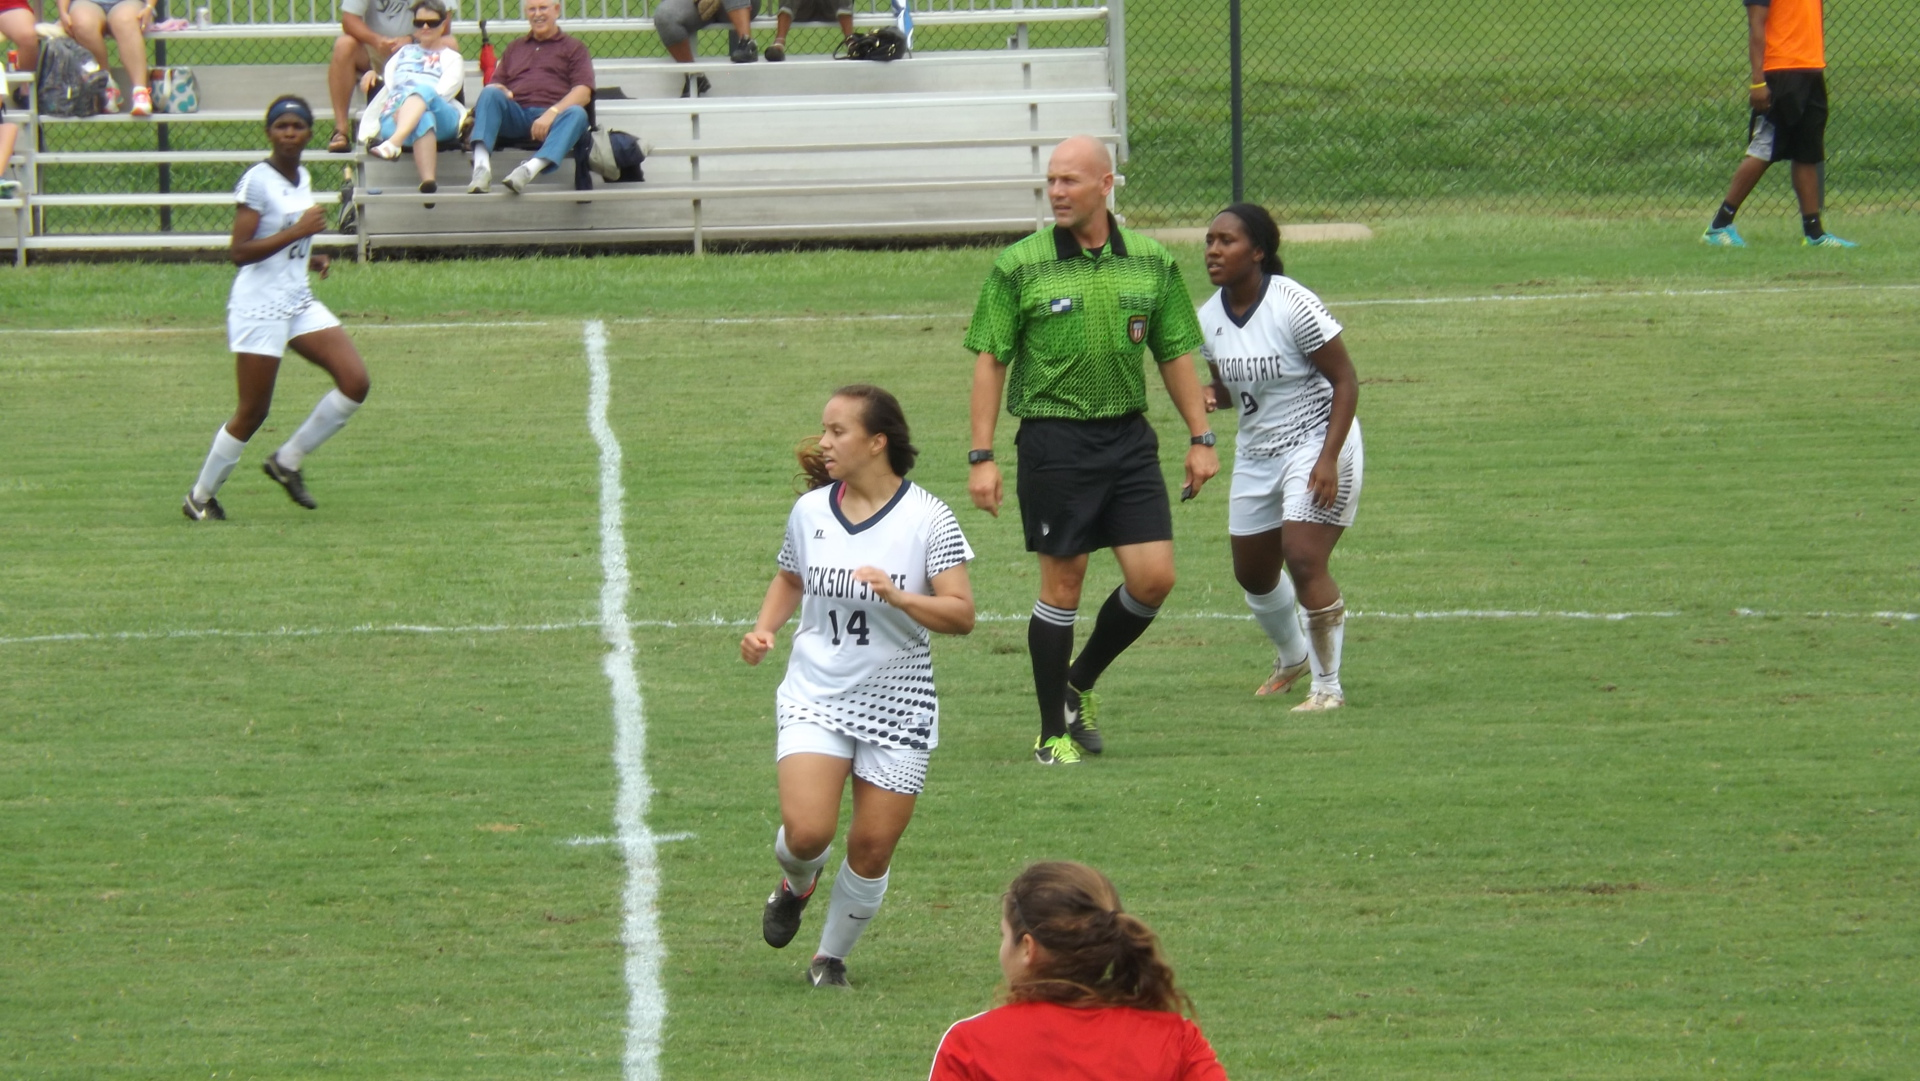 SOC - Aug. 21: Lady Tigers Fall 0-2 to SLU in Season Opener